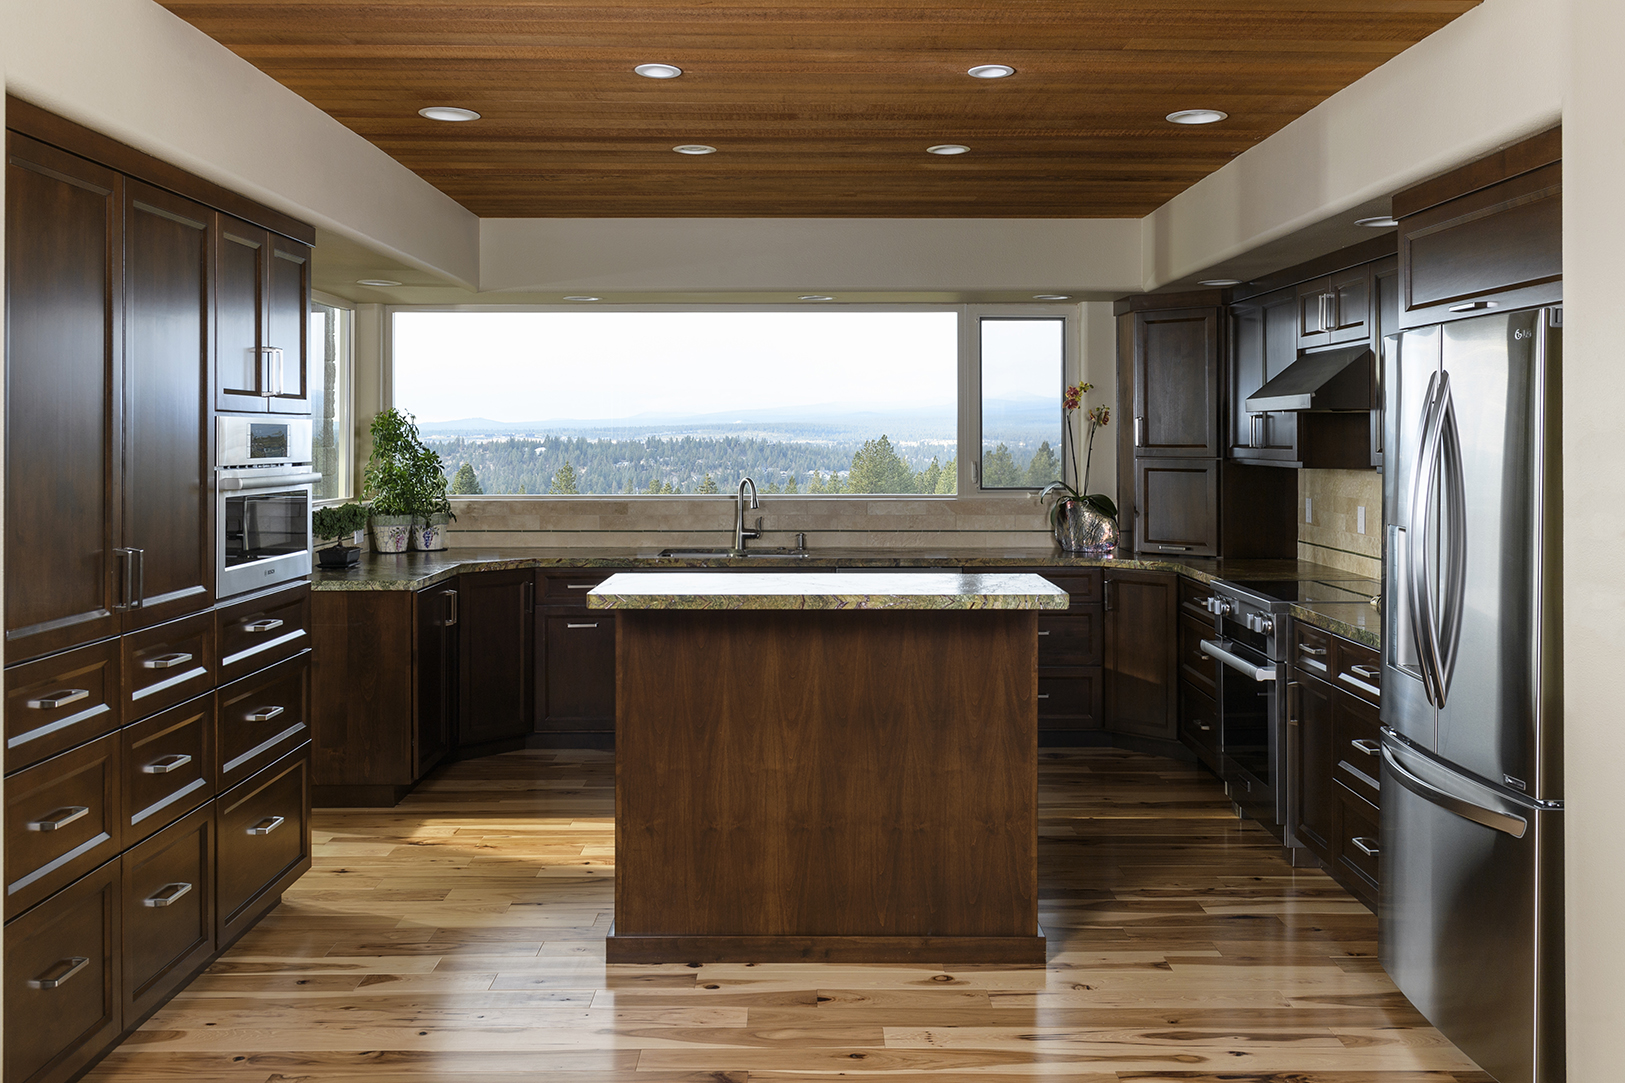 PGC-Building-design-bend-oregon-combs-remodel-7915-1625px